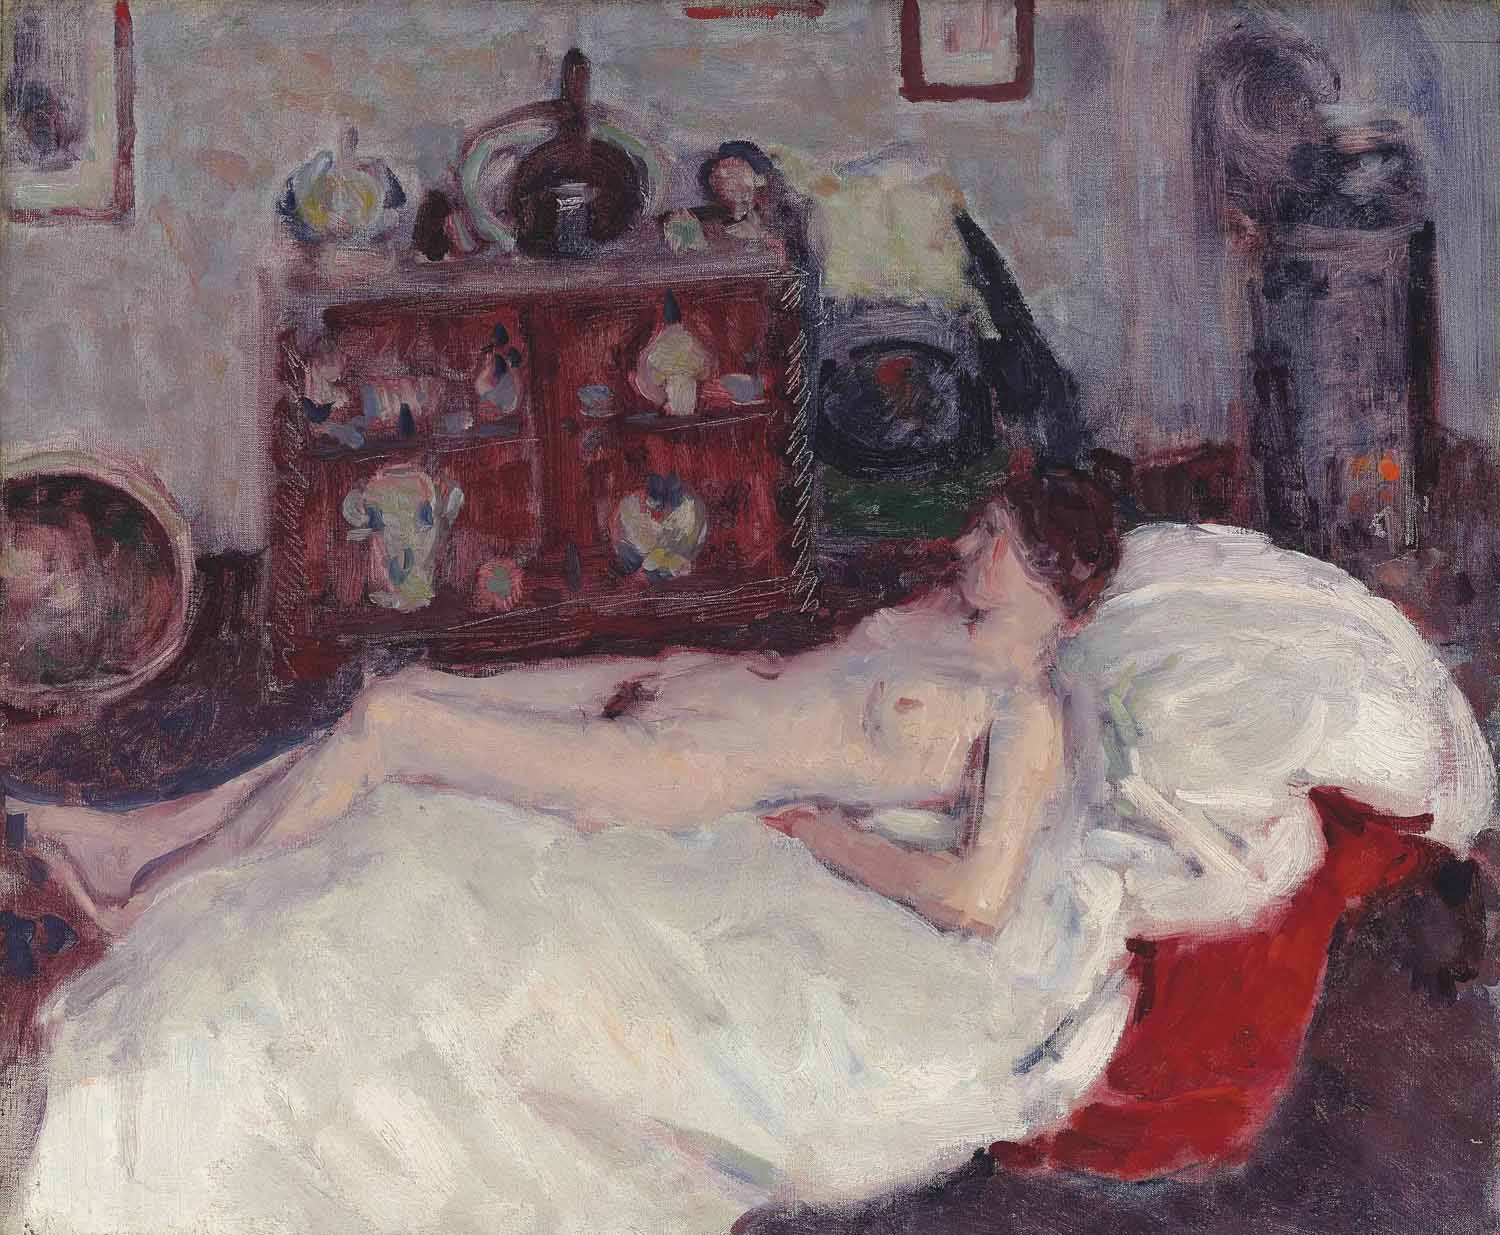 Nude with stove